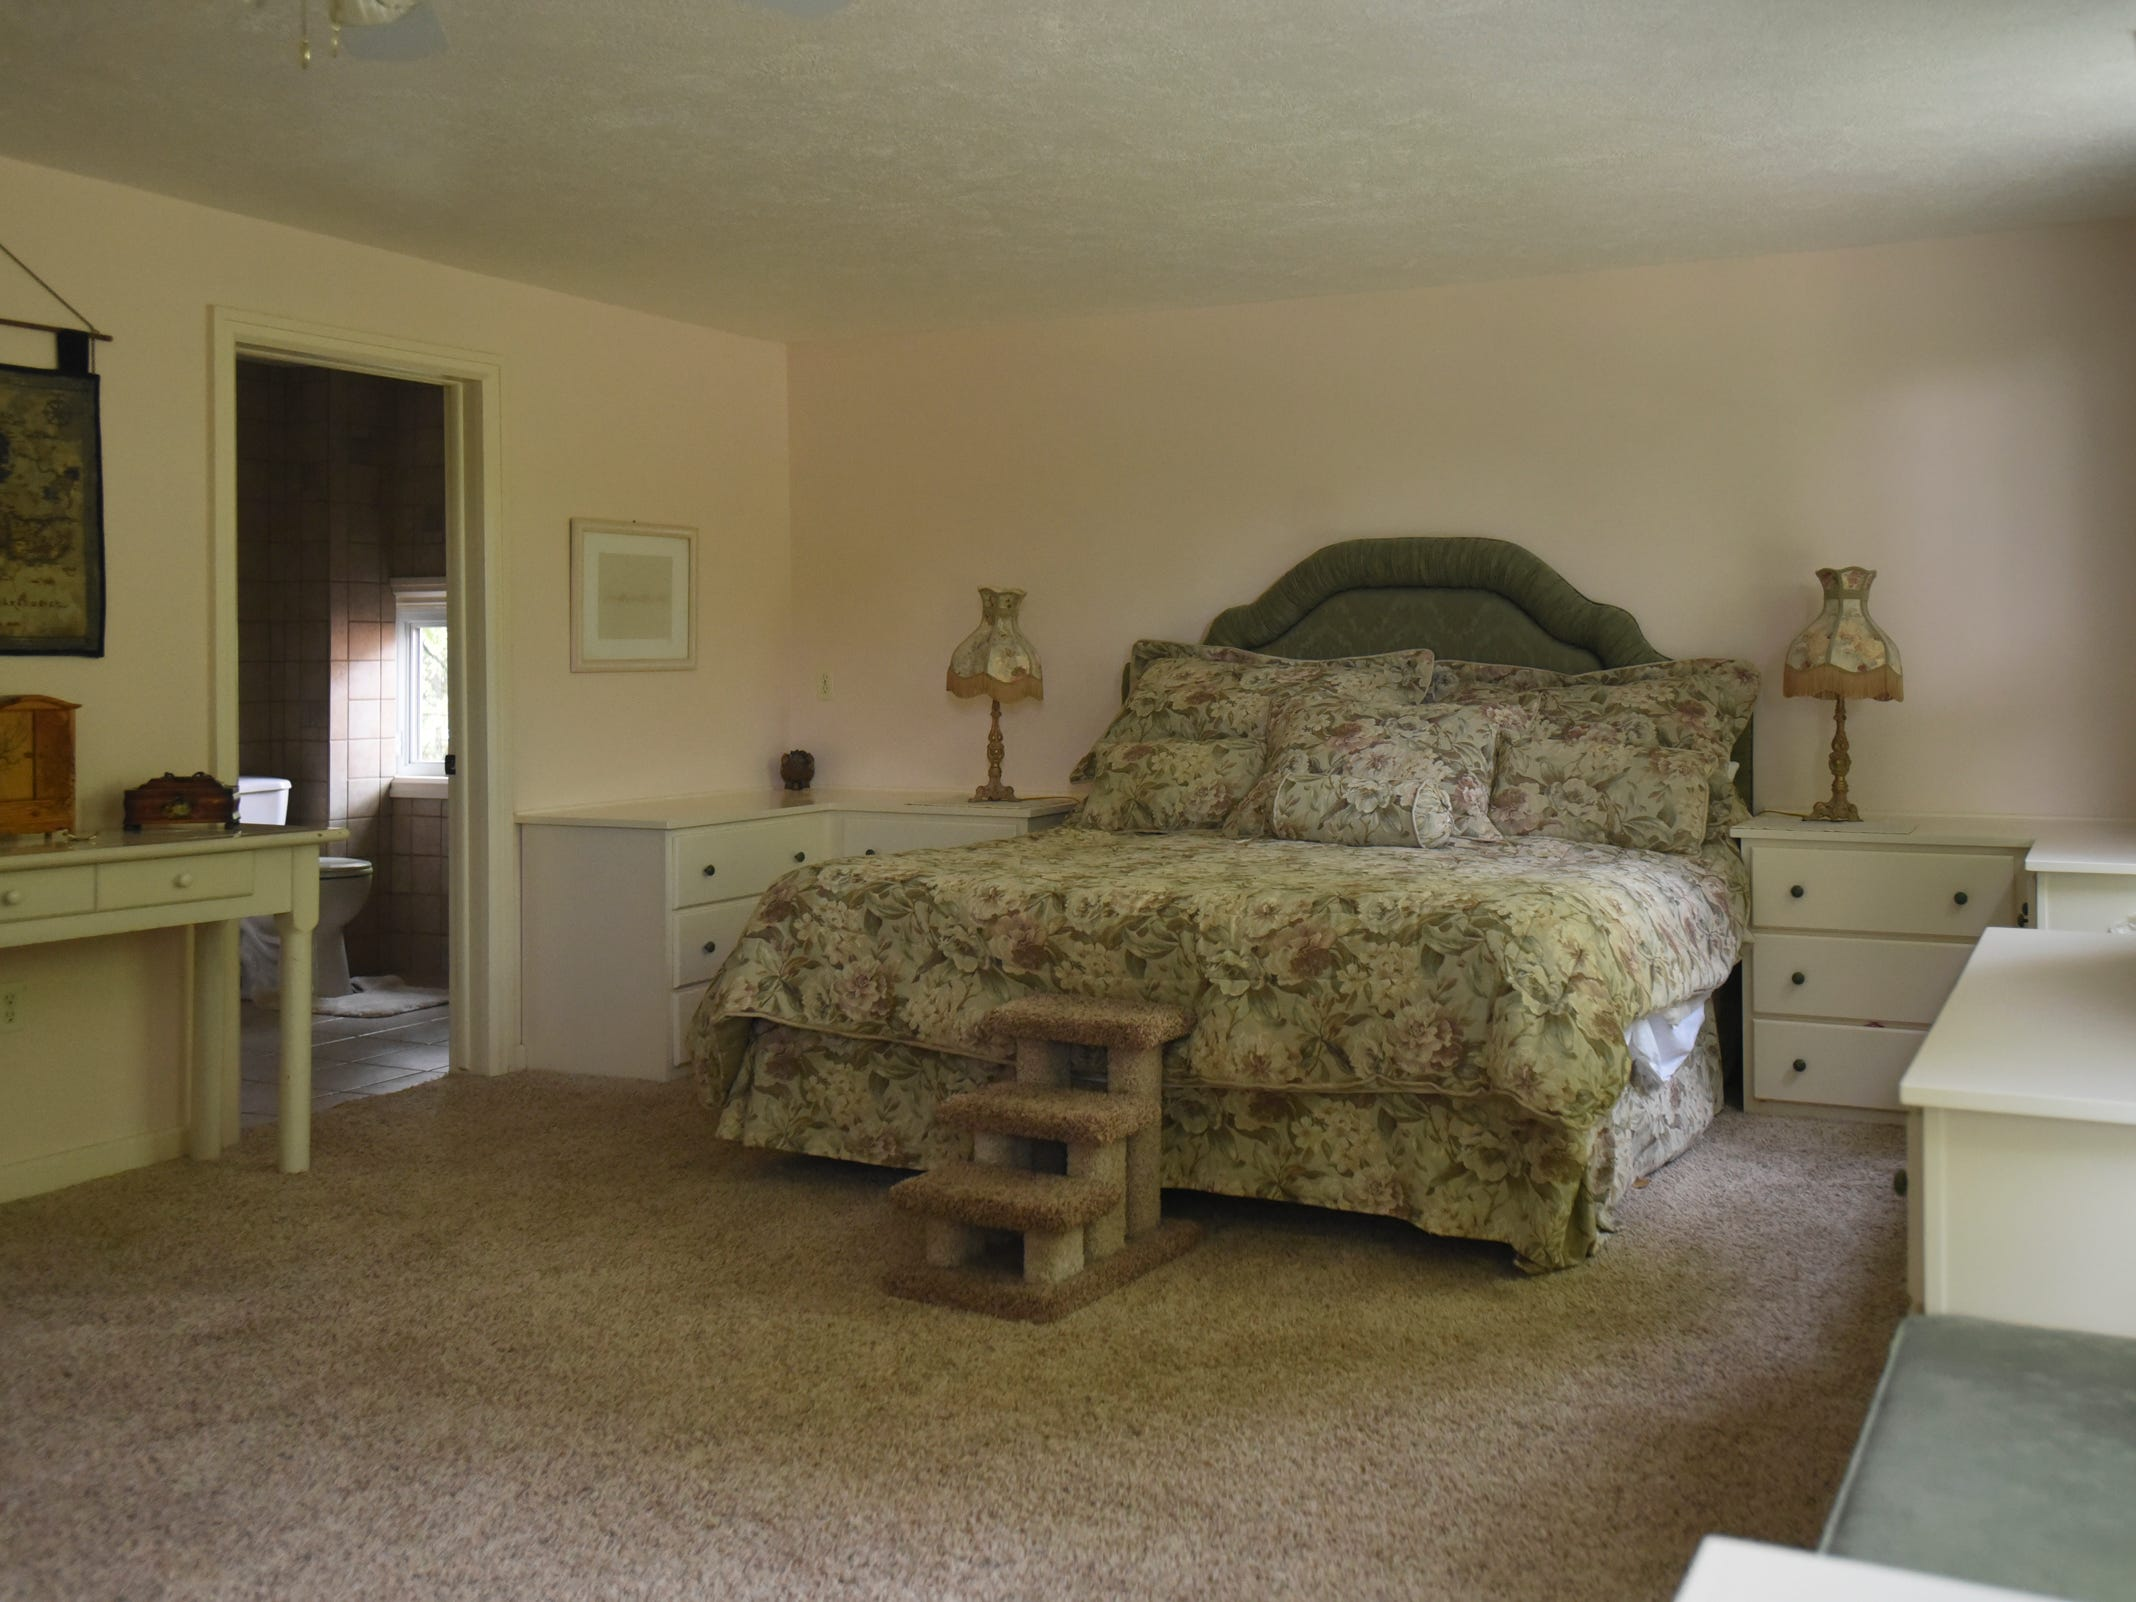 An upstairs bedroom in the historic Shaft homestead in Shaftsburg.  The five bedroom farmhouse  was built in 1846.